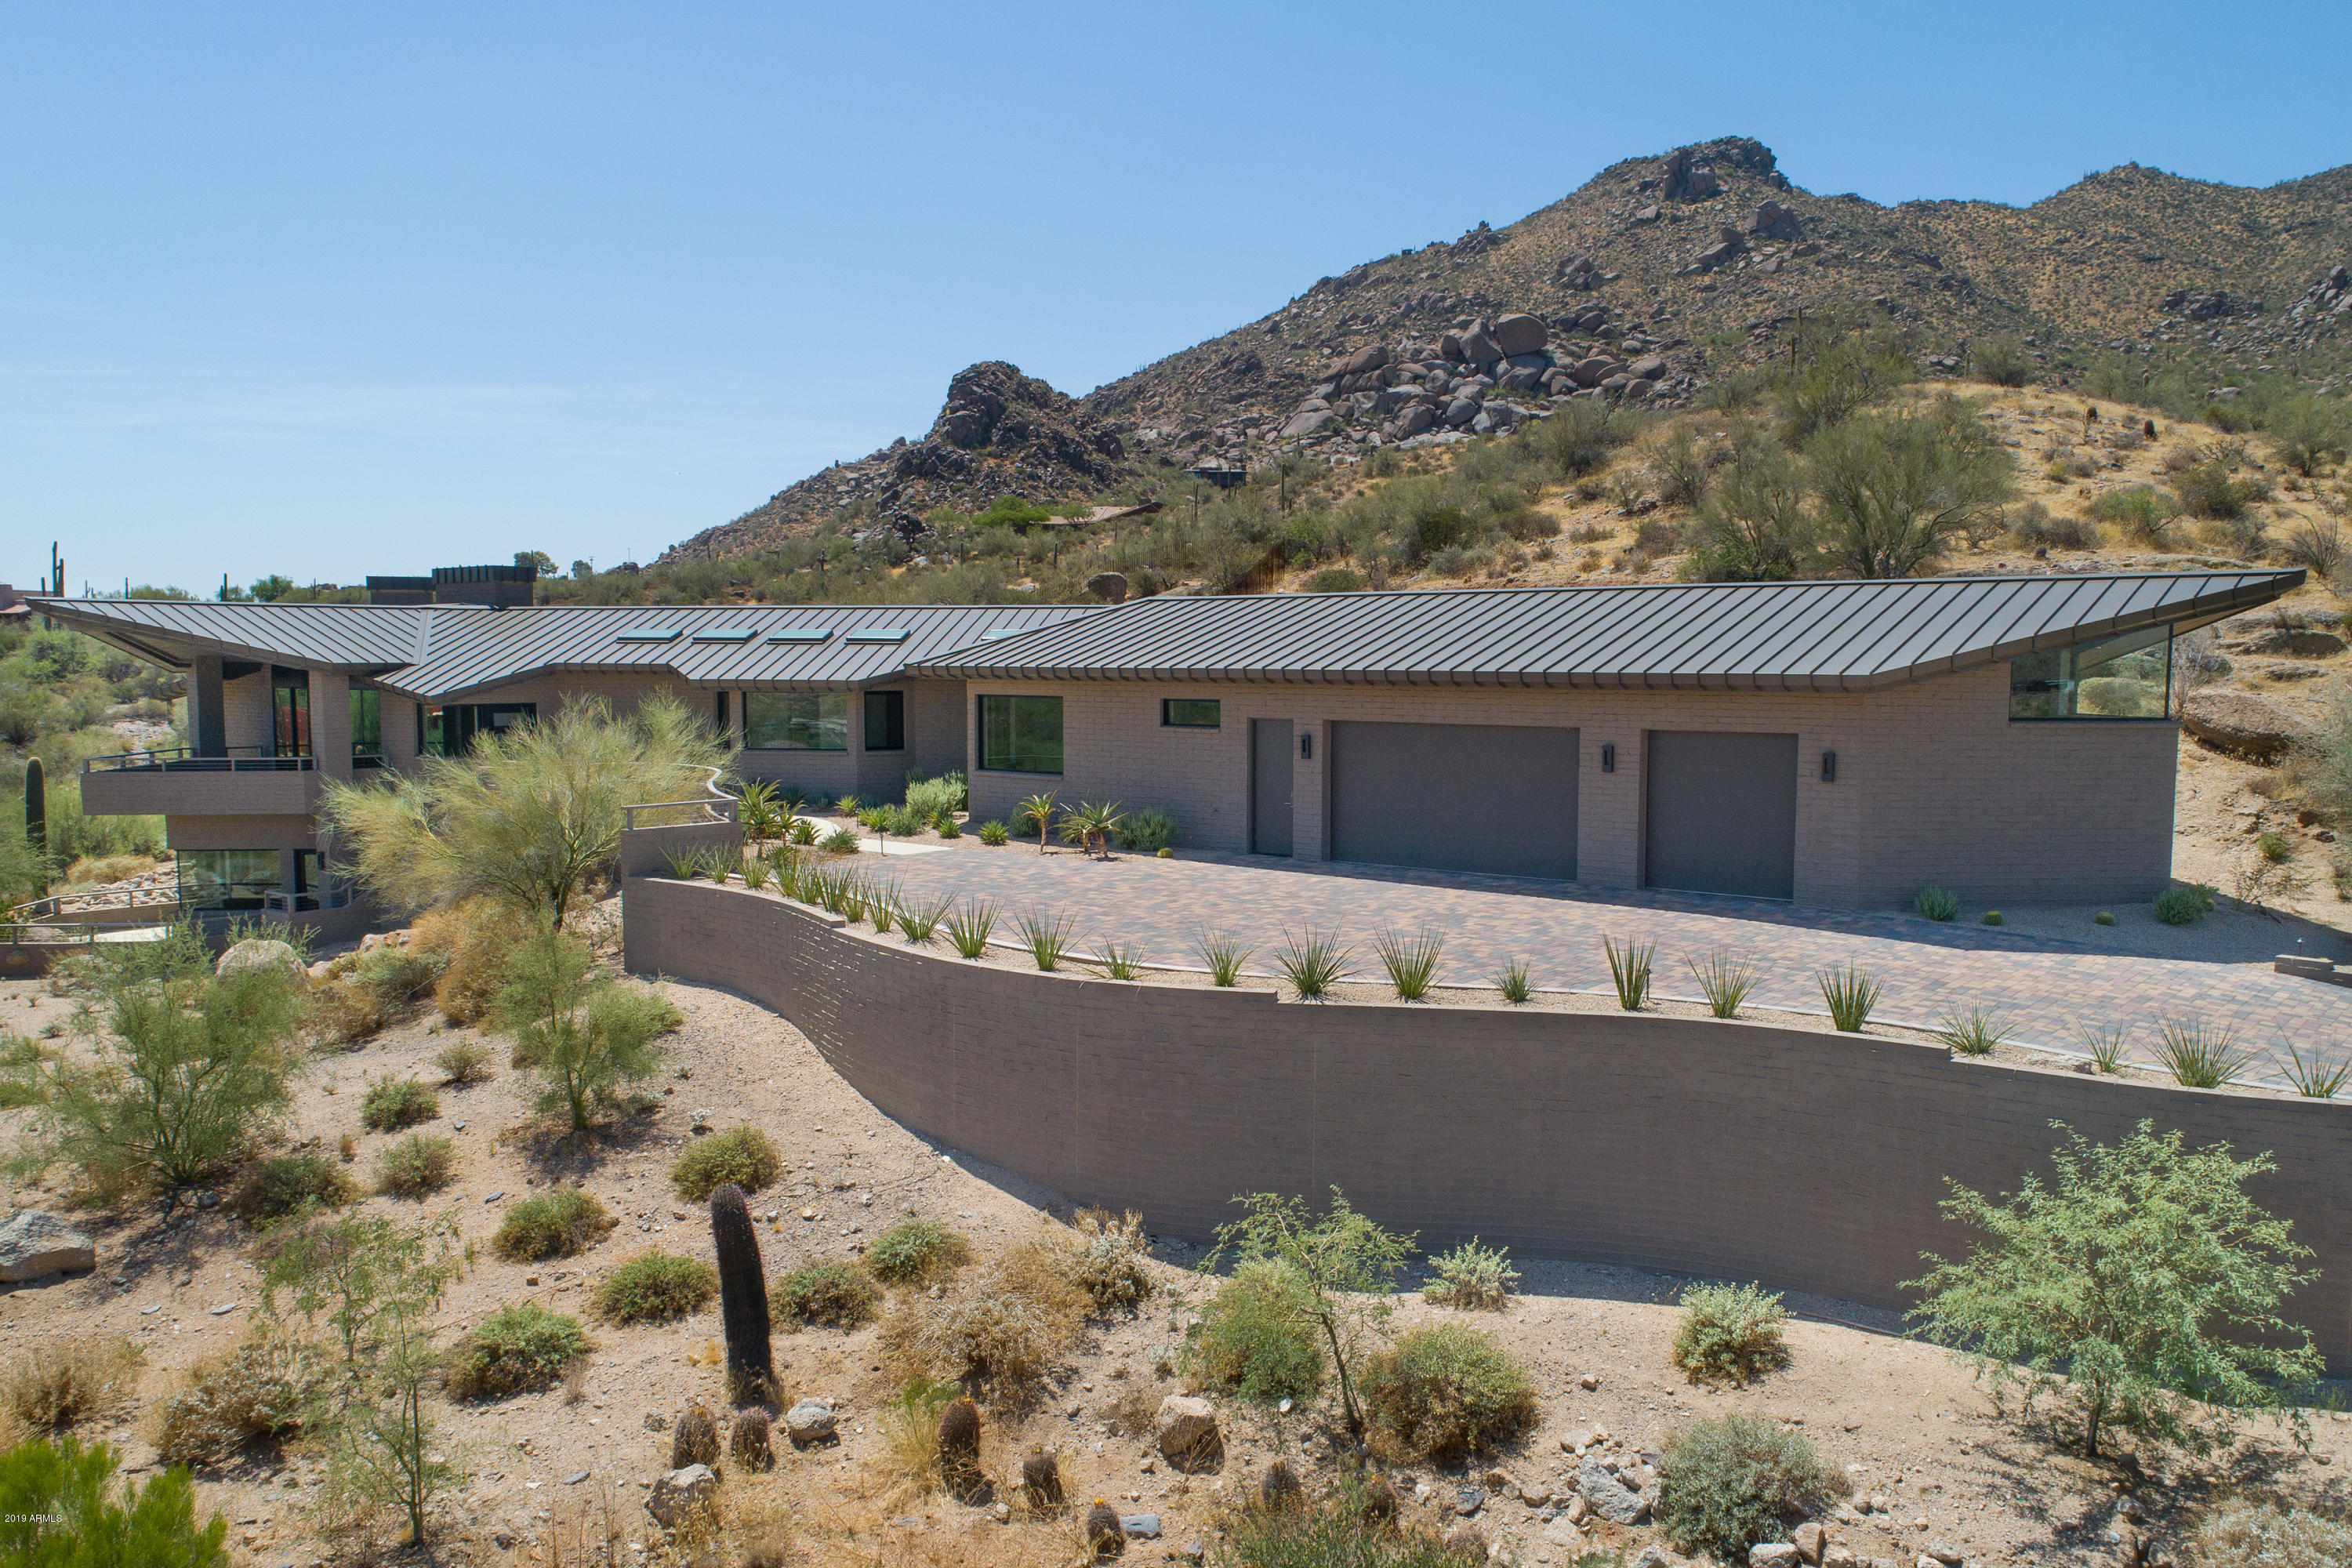 MLS 5843318 37251 N Nighthawk Way, Carefree, AZ 85377 Carefree AZ One Plus Acre Home